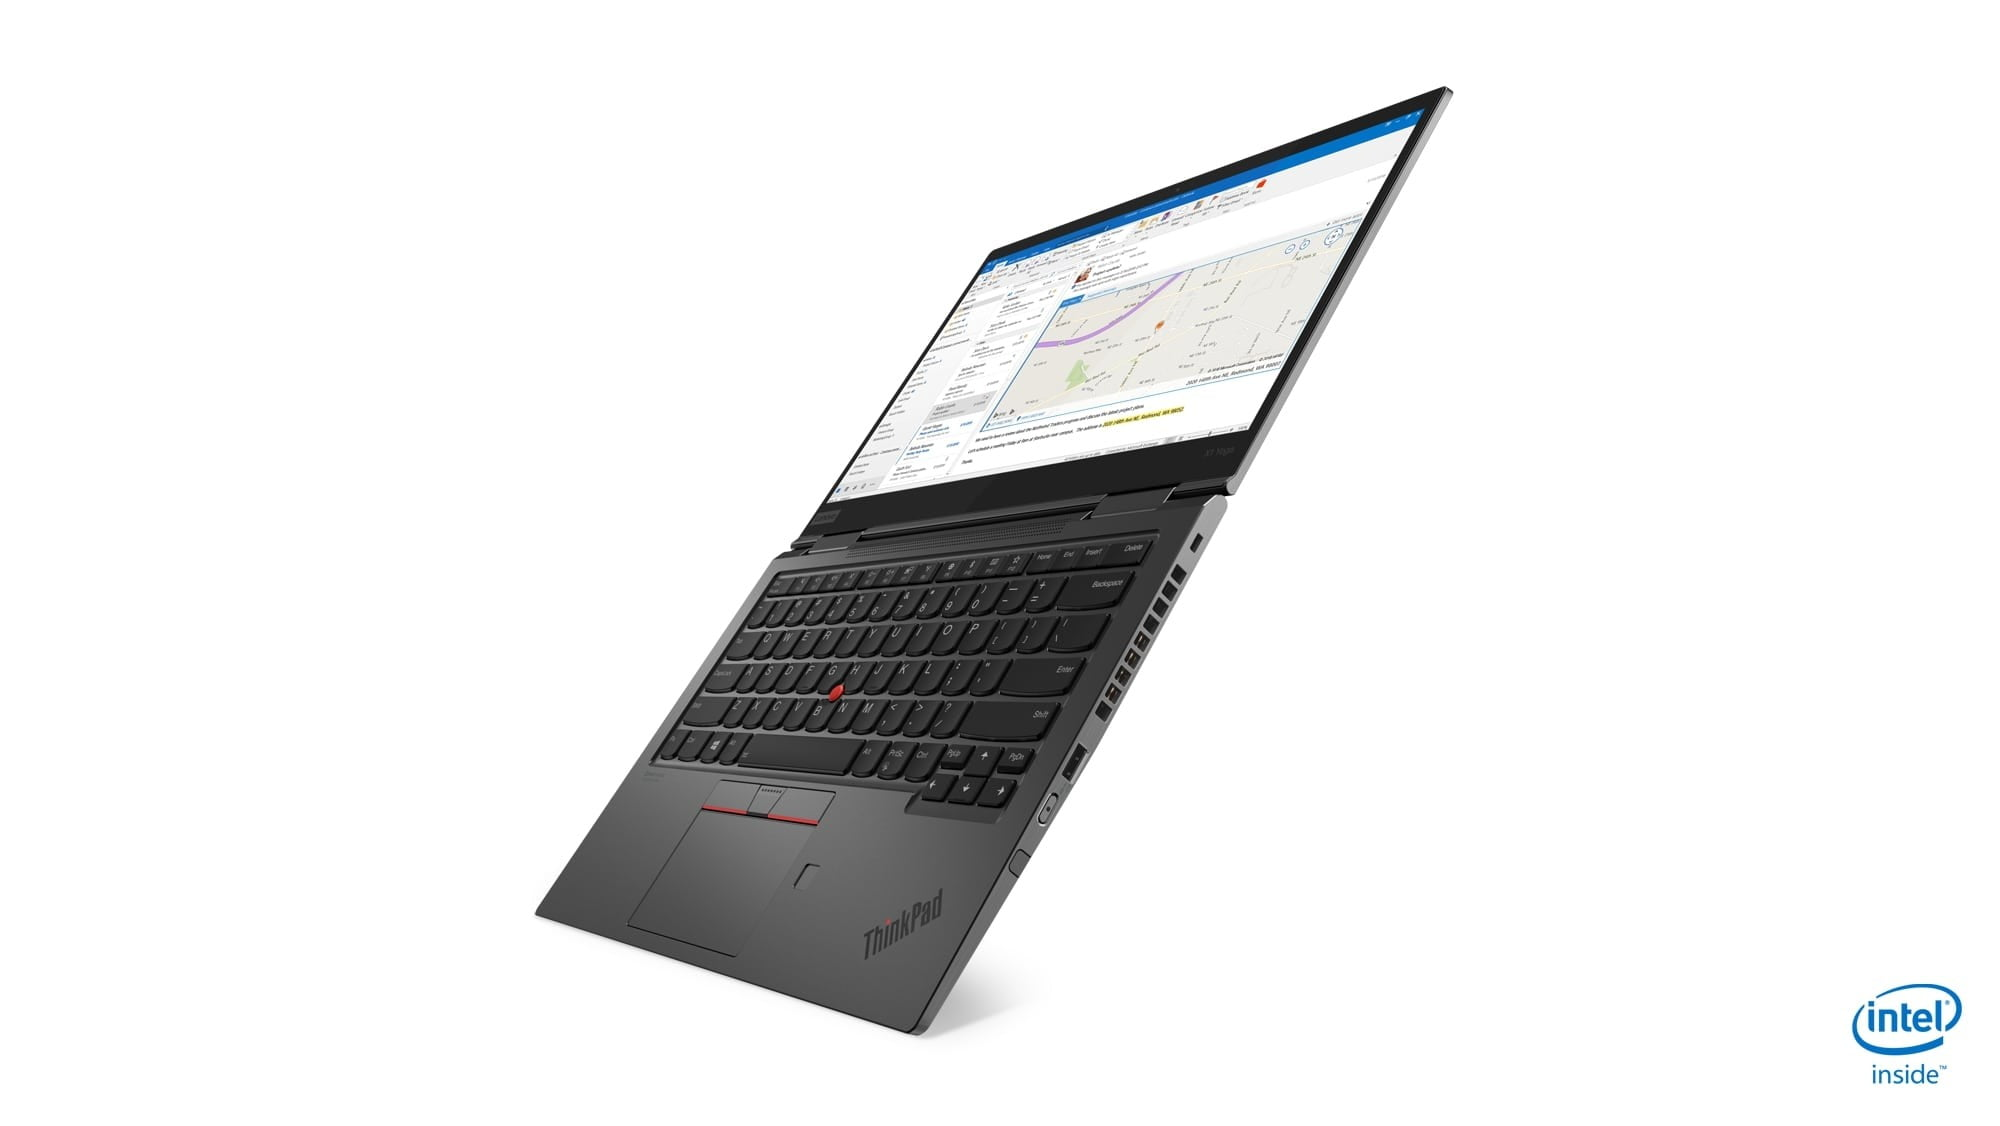 lenovo annouces new thinkpads with 10th gen cometlake 04 x1 yoga hero left 180 degree